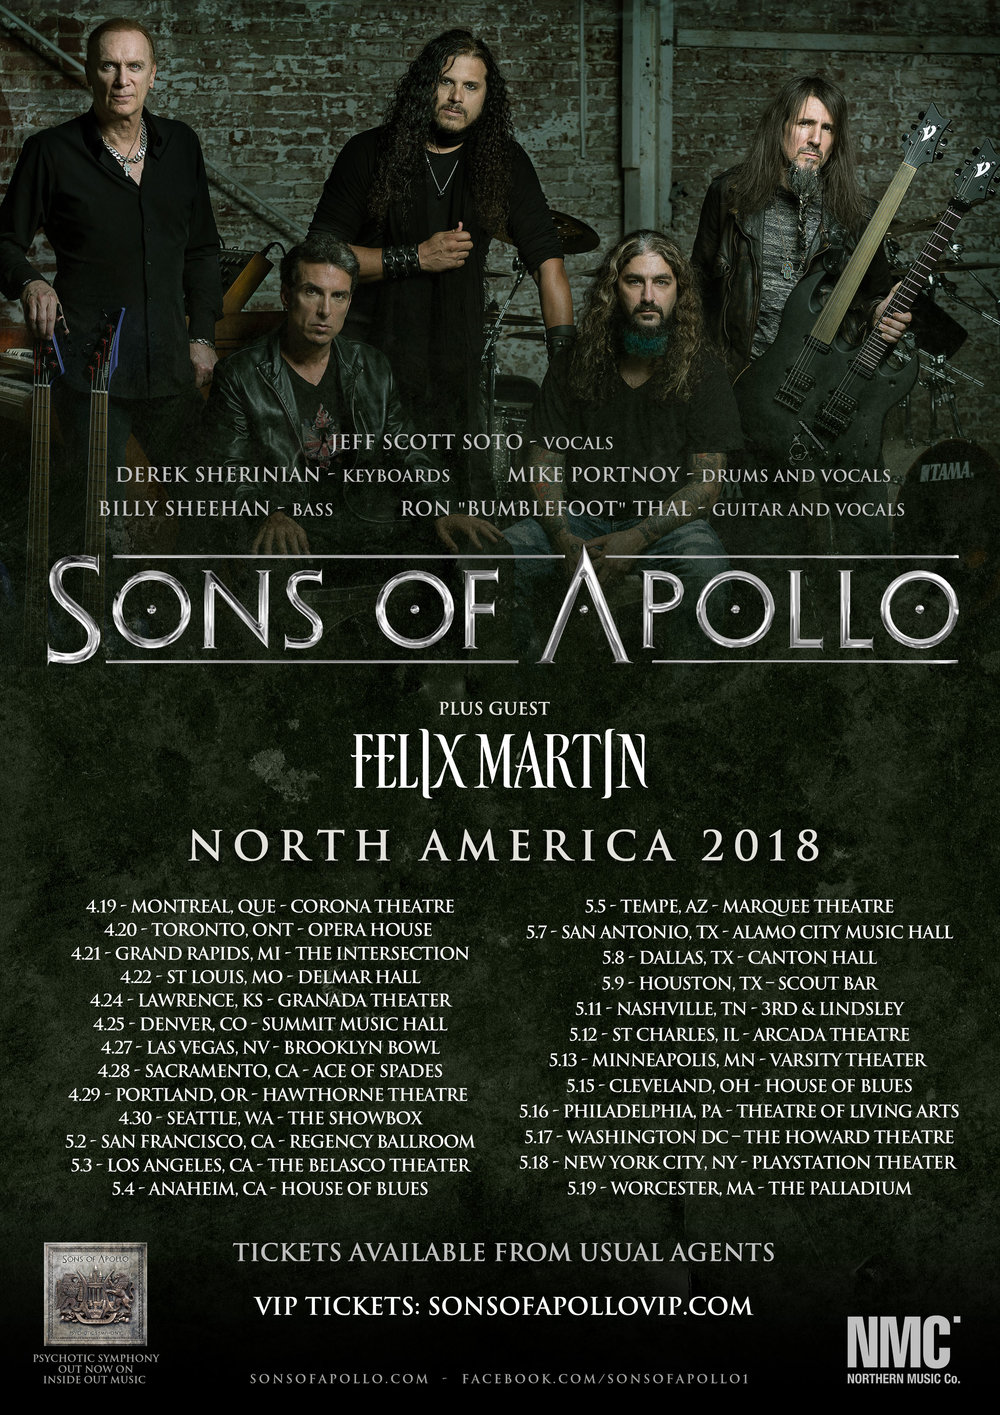 SONS OF APOLLO - North America Tour with Felix Martin. Tour dates:04/19/18 - Montreal, QC - Corona Theater04/20/18 - Toronto, ON - Opera House04/21/18 - Grand Rapids, MI - The Intersection04/22/18 - St. Louis, MO - Delmar Hall04/24/18 - Lawrence, KS - Granada Theater04/25/18 - Denver, CO - Summit Music Hall04/27/18 - Las Vegas, NV - Brooklyn Bowl04/28/18 - Sacramento, CA - Ace Of Spades04/29/18 - Portland, OR - Hawthorne Theater04/30/18 - Seattle, WA - The Showbox05/02/18 - San Francisco, CA - Regency Ballroom05/03/18 - Los Angeles, CA - The Belasco Theater05/04/18 - Anaheim, CA - House Of Blues05/05/18 - Tempe, AZ - Marquee Theater05/07/18 - San Antonio, TX - Alamo City Music Hall05/08/18 - Dallas, TX - Canton Hall05/09/18 - Houston, TX - Scout Bar05/11/18 - Nashville, TN - 3rd & Lindsley05/12/18 - St. Charles, IL - Arcada Theater05/13/18 - Minneapolis, MN - Varsity Theater05/15/18 - Cleveland, OH - House Of Blues05/16/18 - Philadelphia, PA - Theater Of The Living Arts 05/18/18 - New York, NY - Playstation Theater05/19/18 - Worcester, MA - The Palladium05/20/18 - Washington DC - Howard Theater